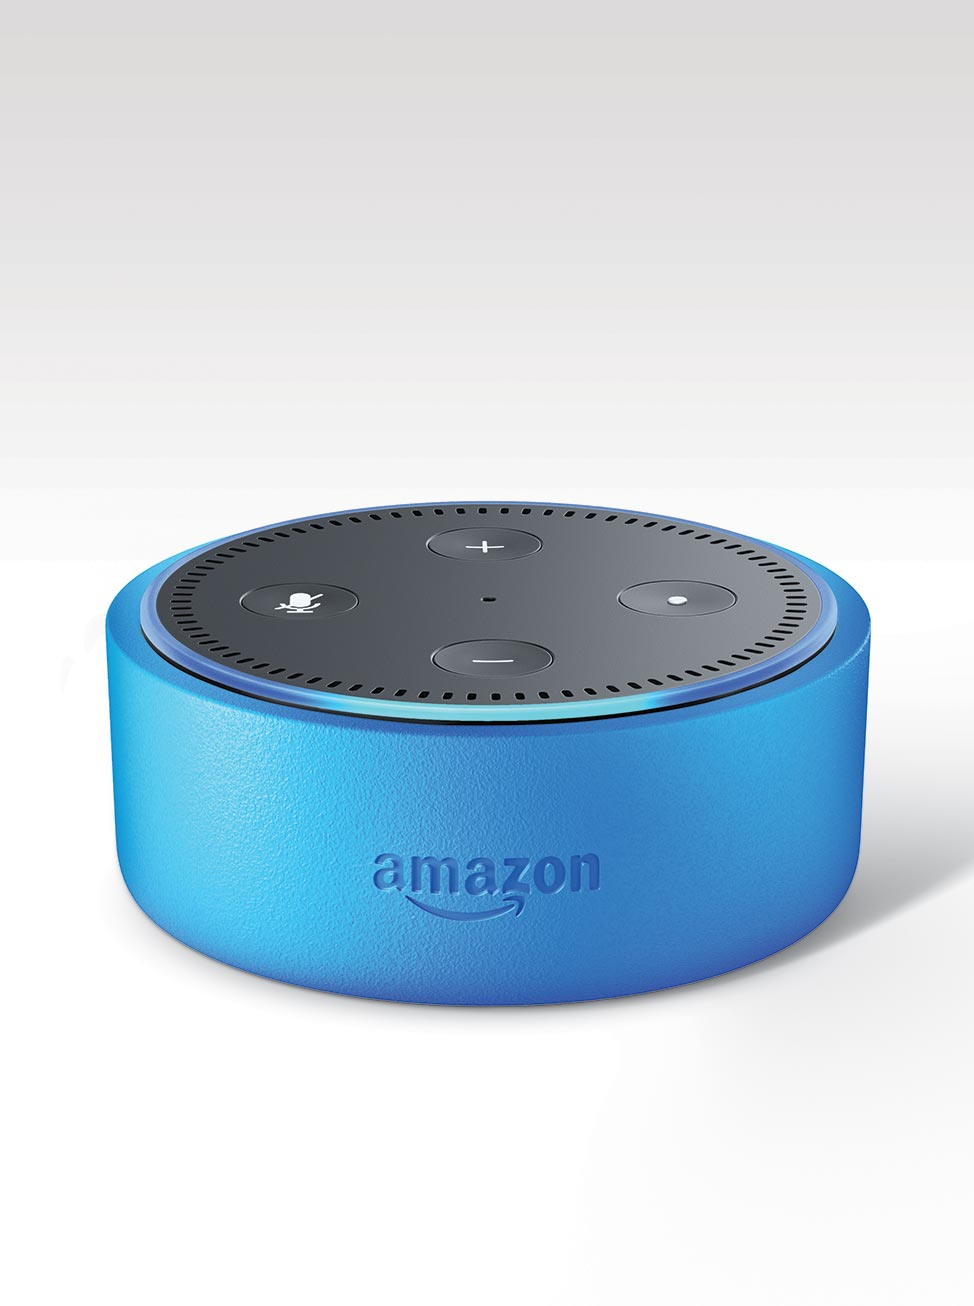 Amazon Echo Dot Kids Edition smart speaker for children